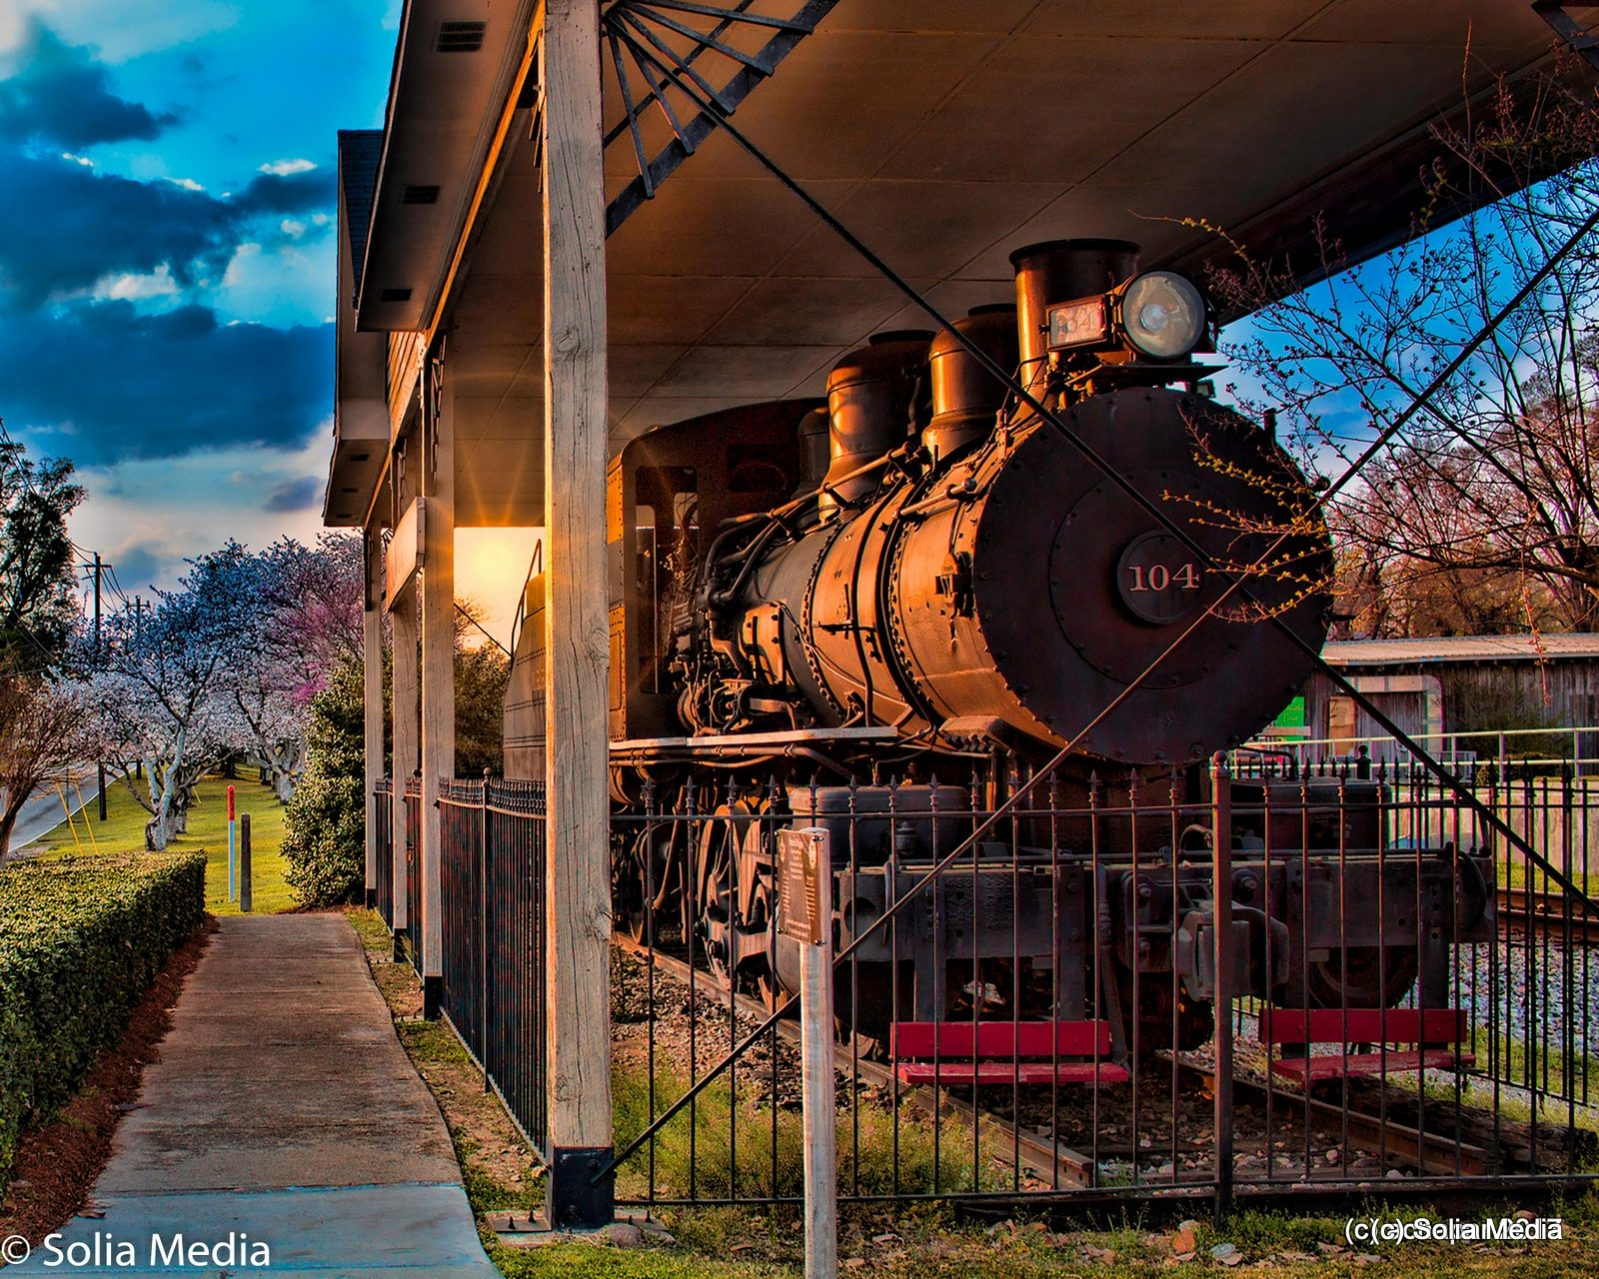 The Dinky, Olde Town Conyers by Solia Media